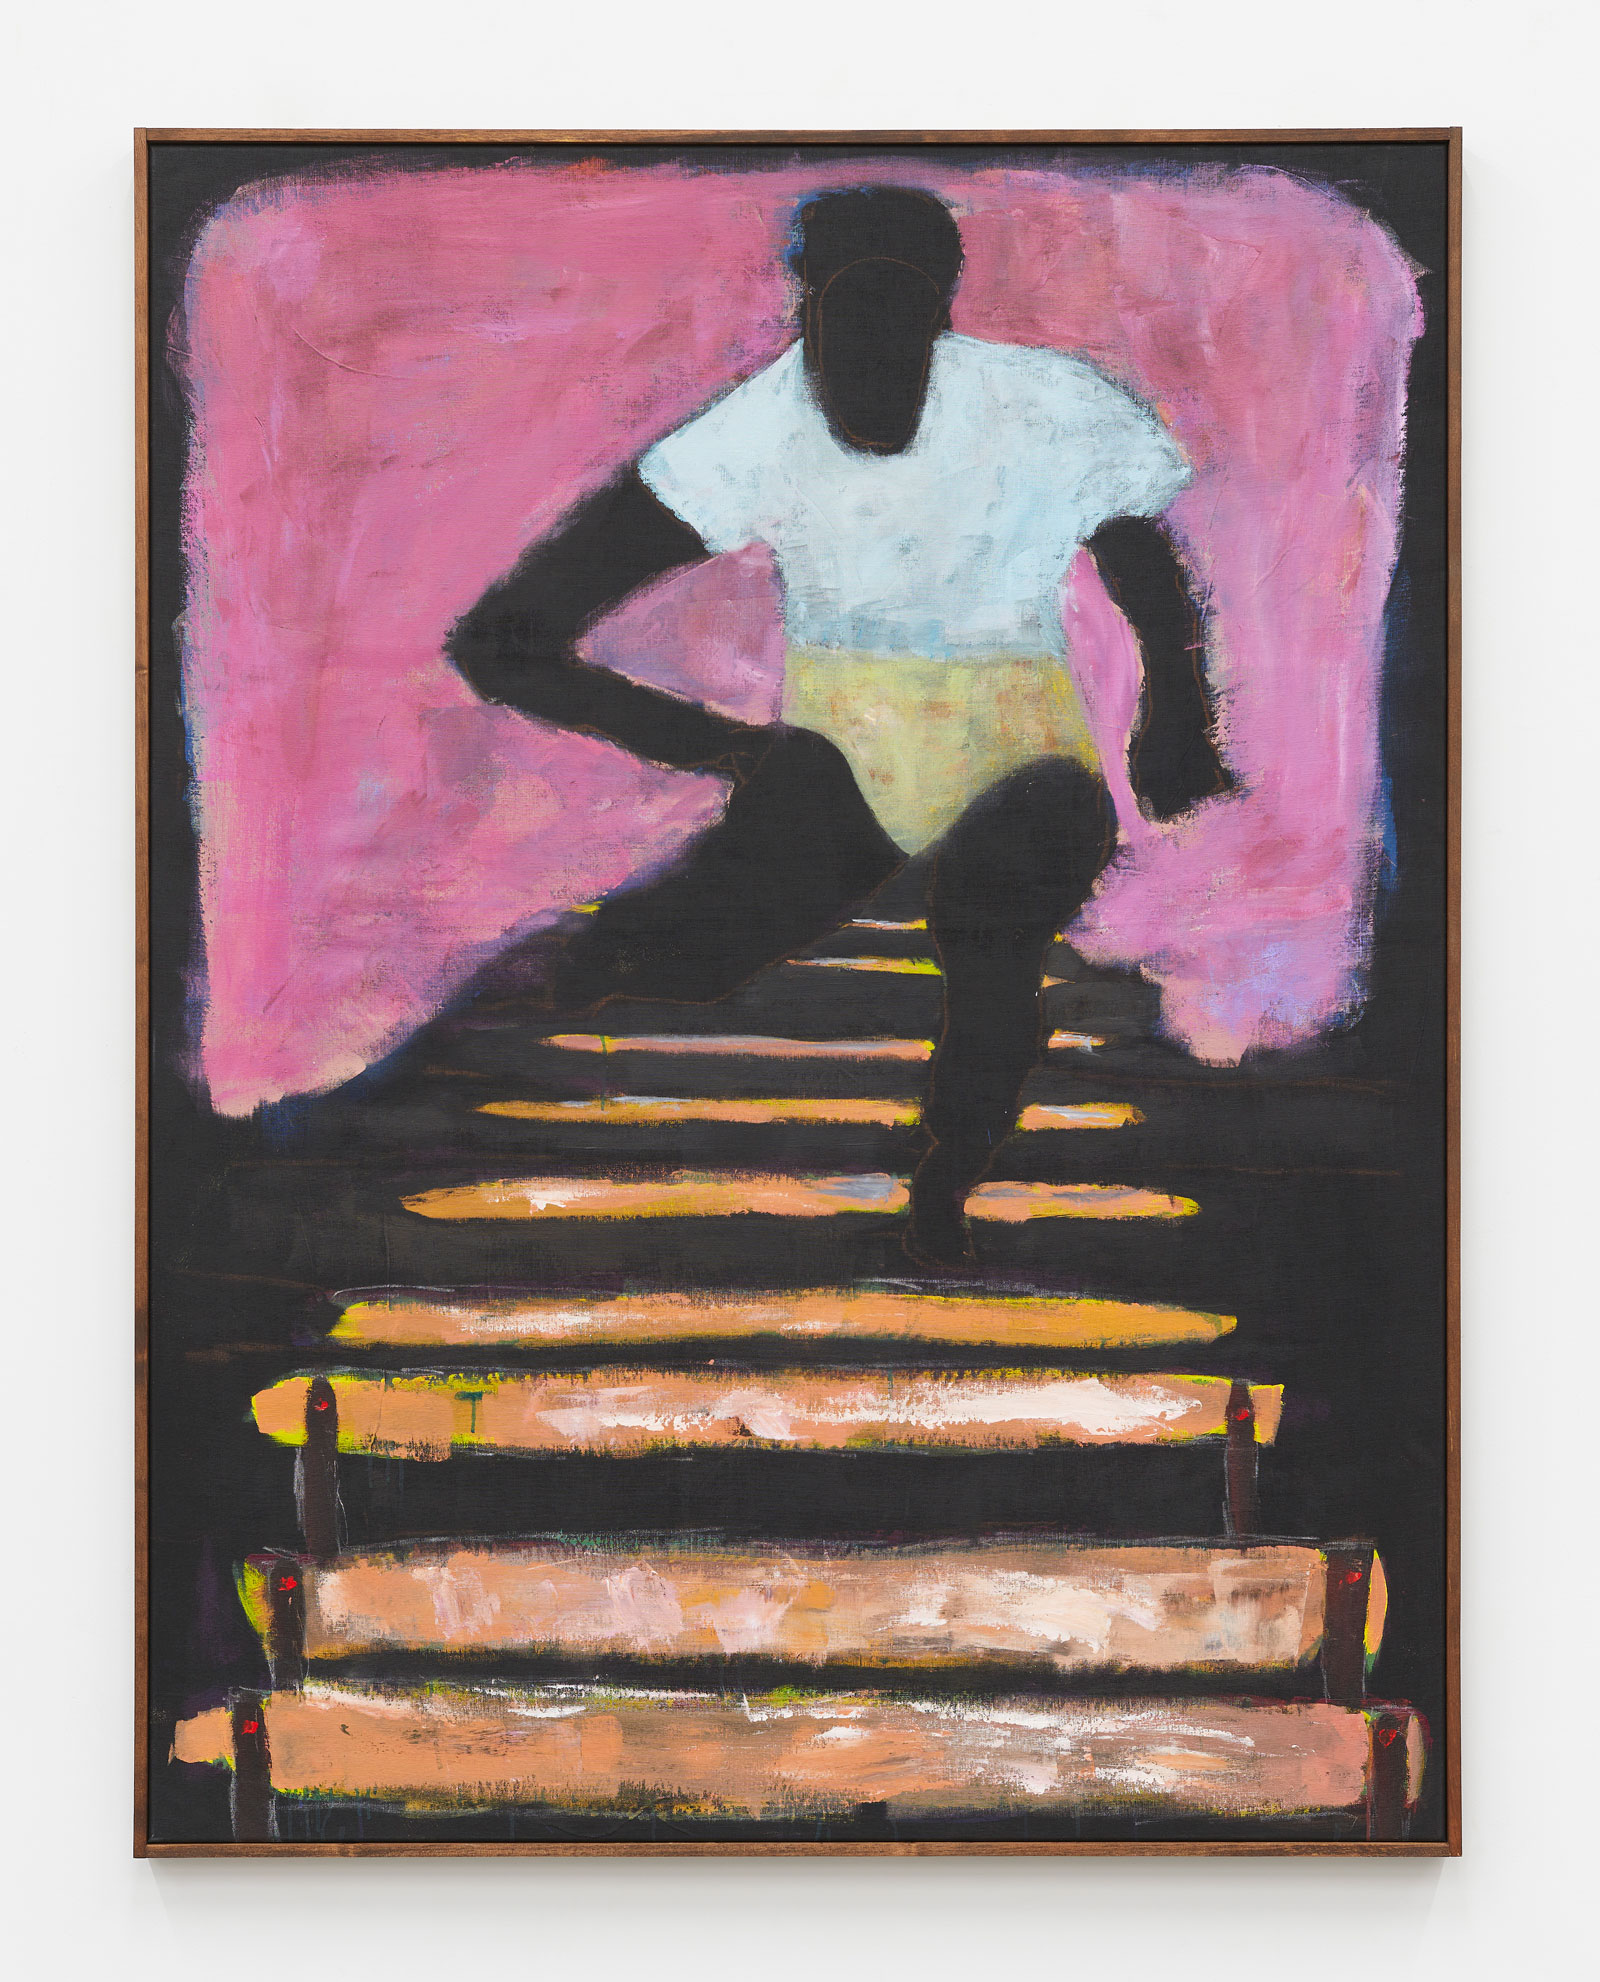 A black man jumping over hurdles with a pink background